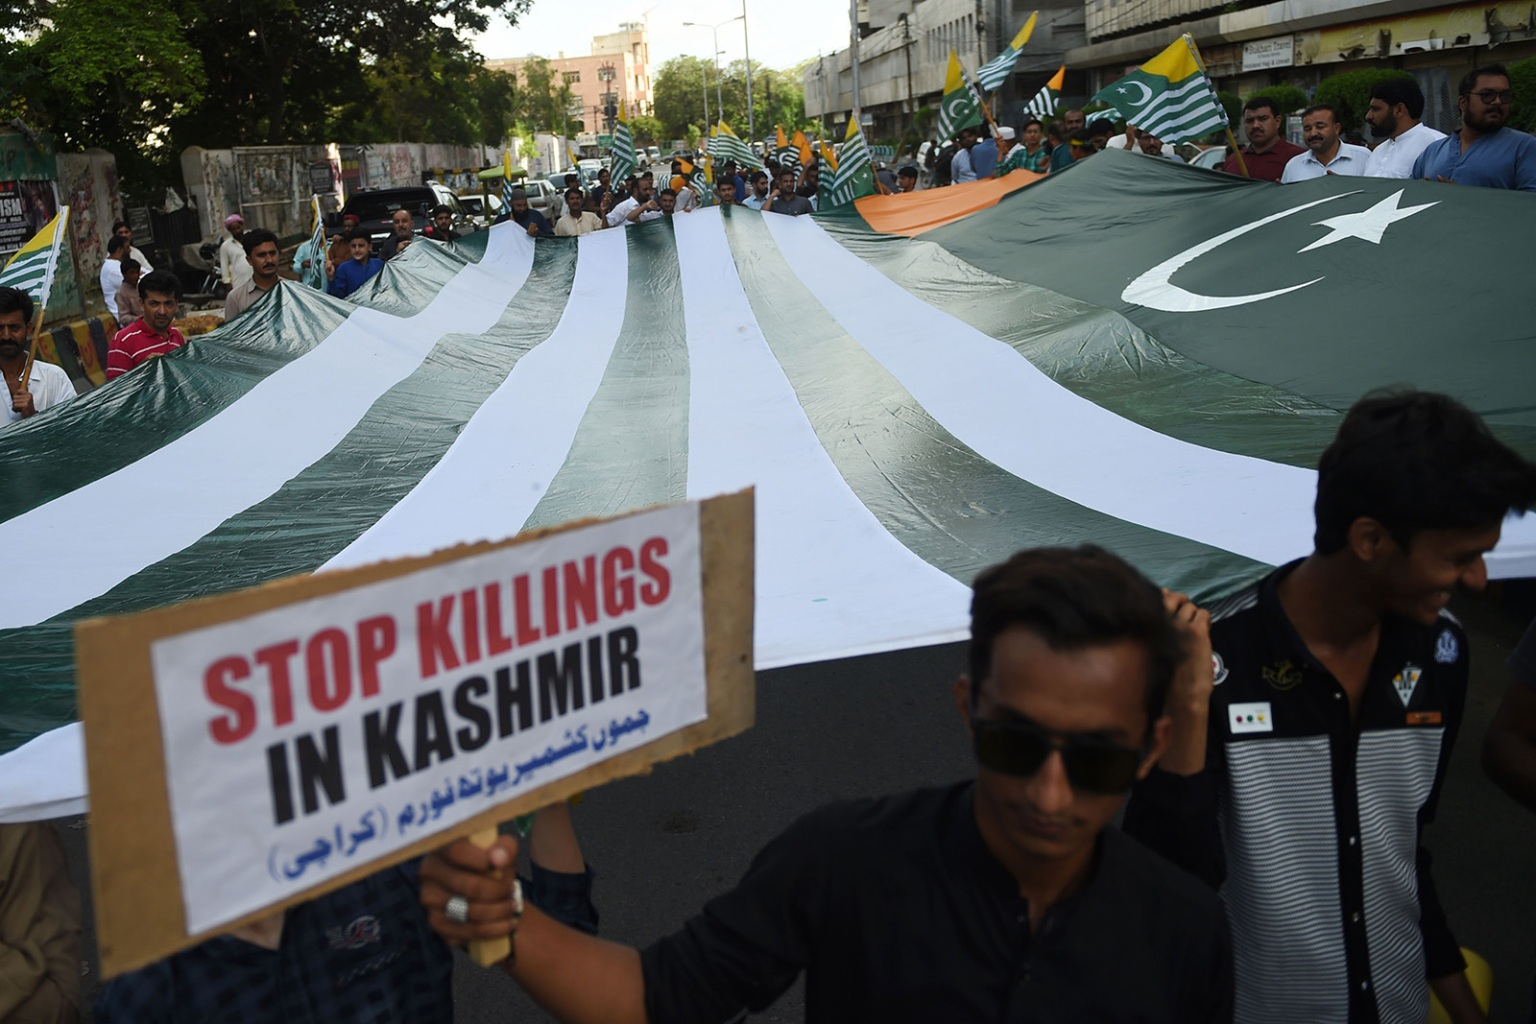 Demonstrators hold a giant flag of Pakistan-administered Kashmir during an anti-Indian protest in Karachi on Aug. 18. RIZWAN TABASSUM/AFP/Getty Images